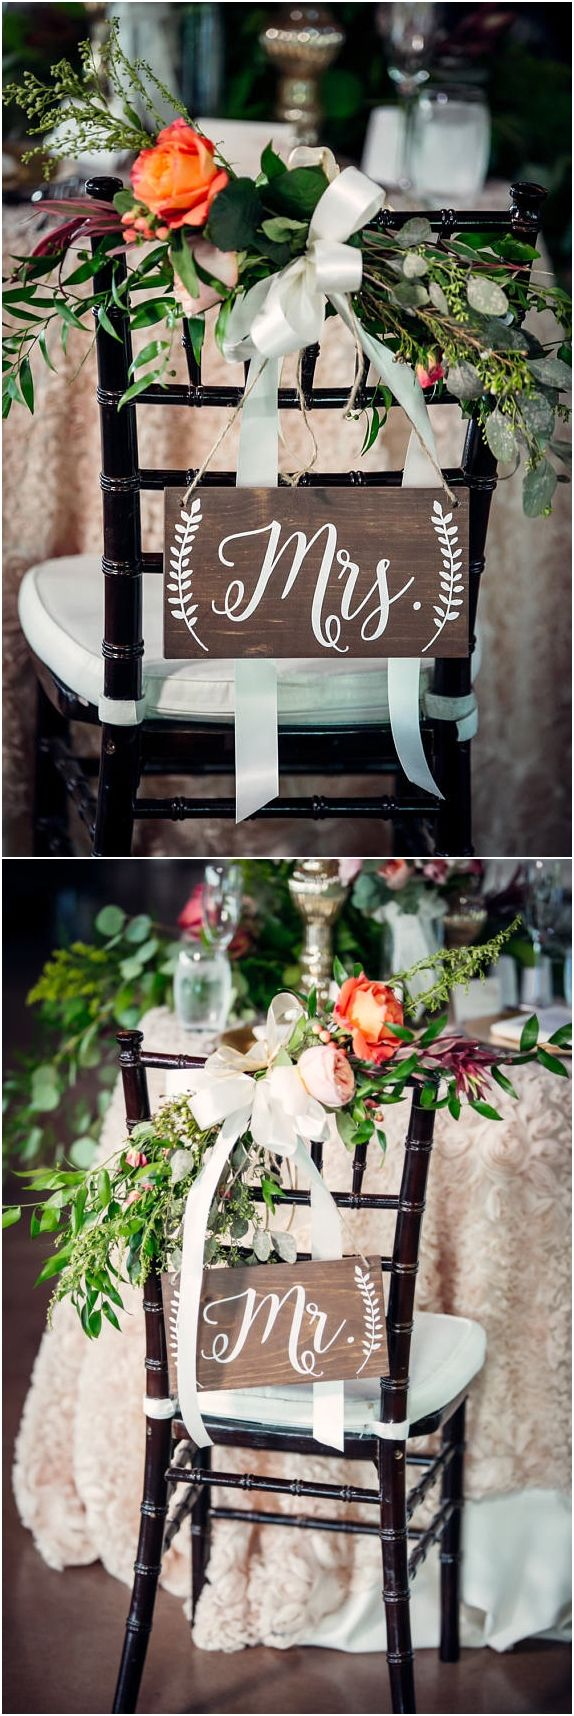 Mr And Mrs Wedding Chairs   I Love These! The Rustic Wedding Signs, White